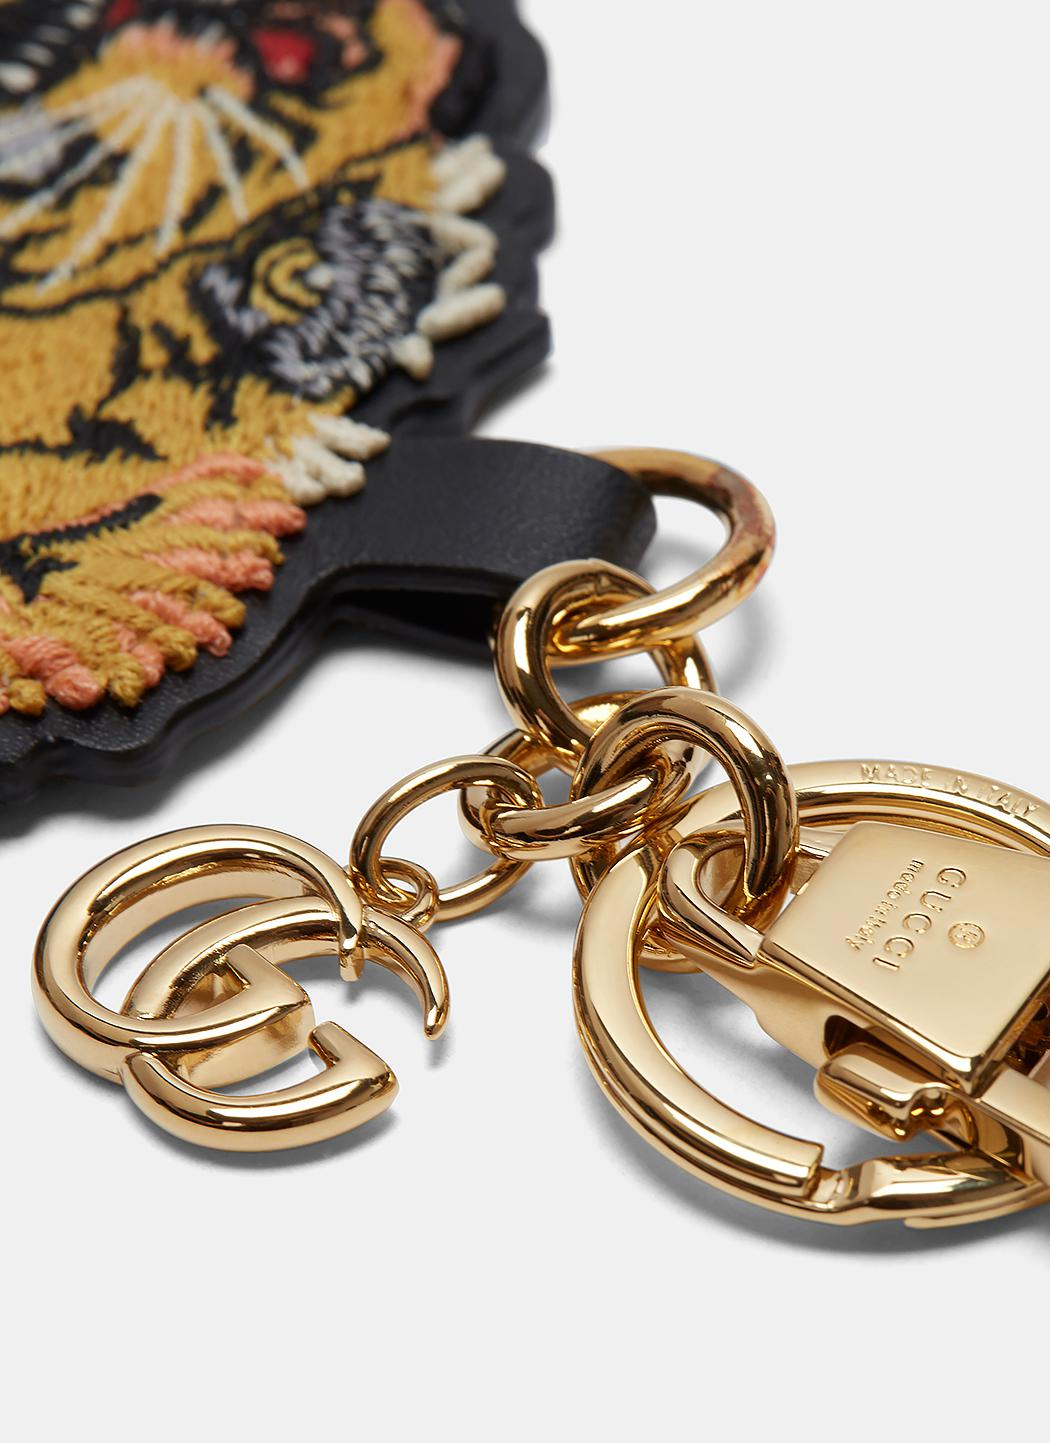 58e62a038fa Lyst - Gucci Embroidered Tiger Key Chain In Yellow in Metallic